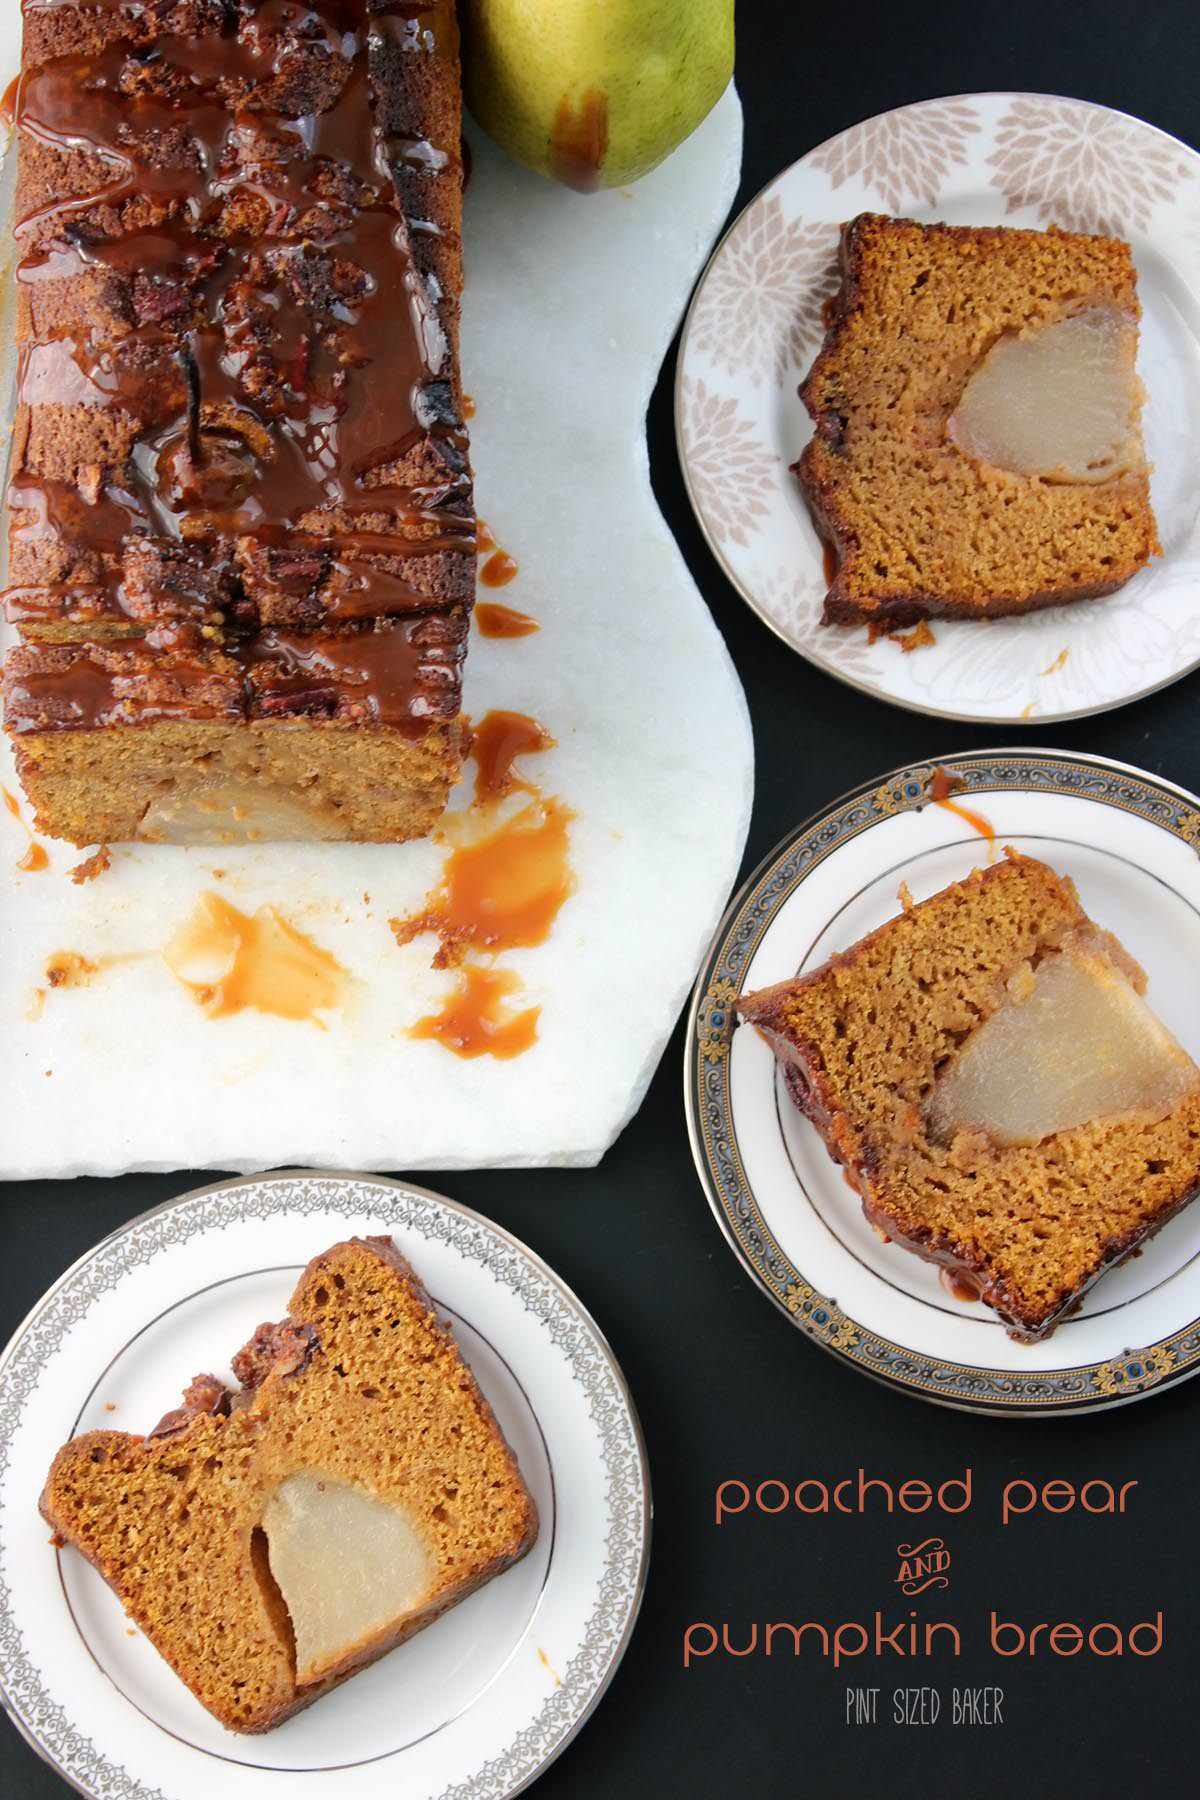 This fall, make some magic! This Poached Pear and Pumpkin Bread has the great flavors of Autumn all in an easy quick bread!